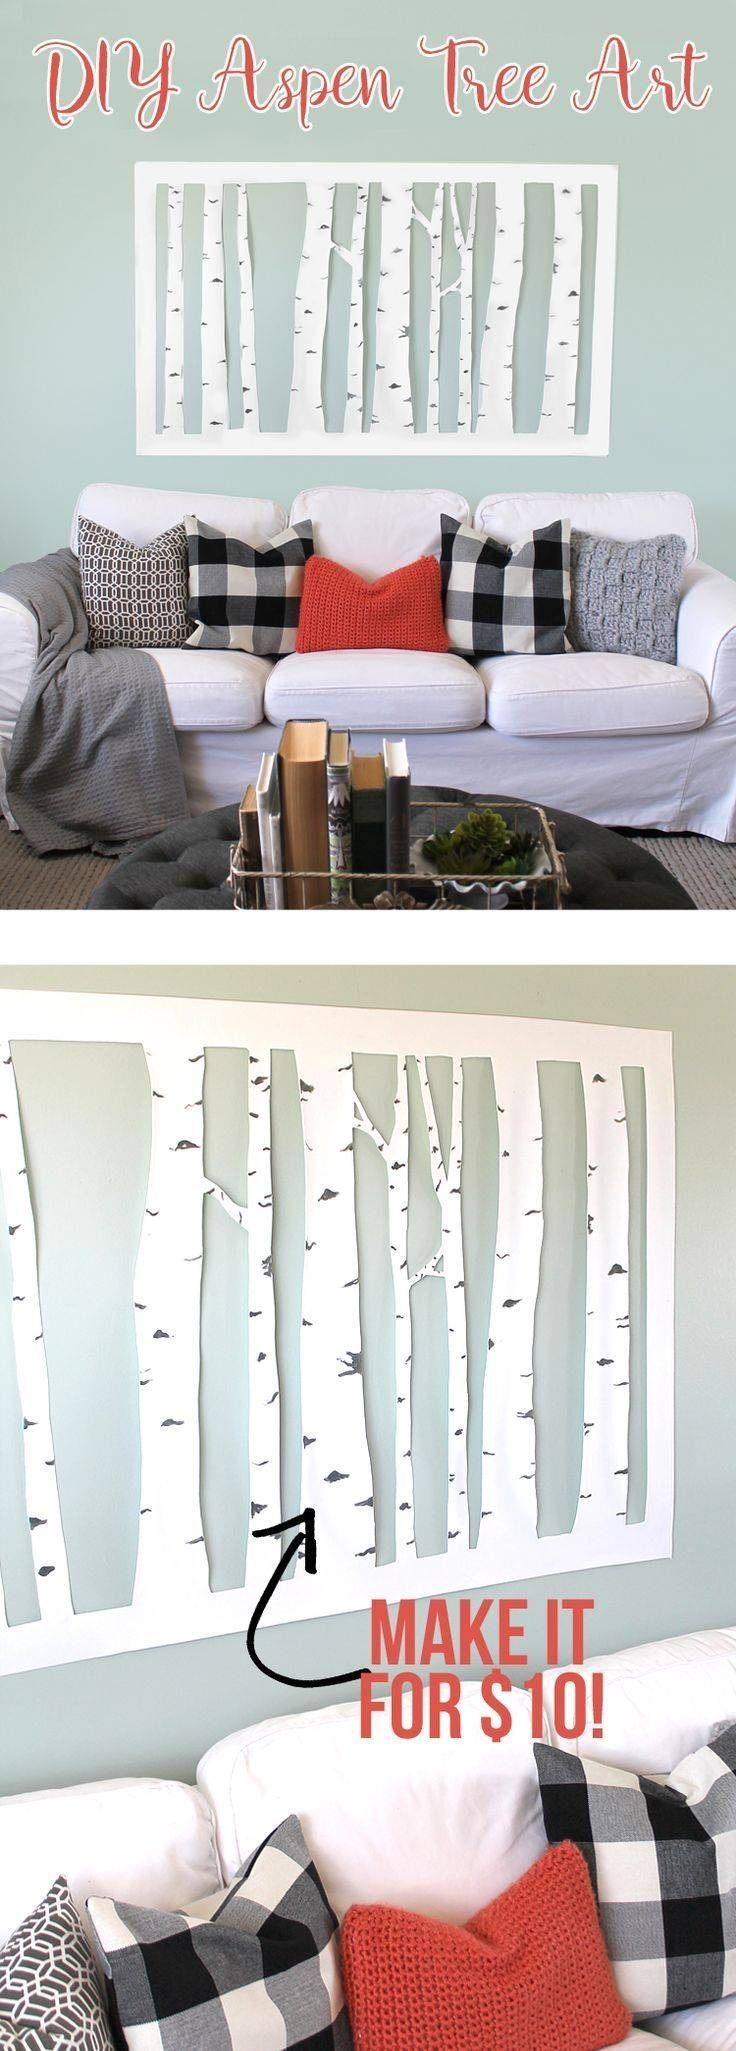 25+ Unique Cheap Wall Art Ideas On Pinterest | Easy Wall Art Throughout Recent Large Cheap Wall Art (View 5 of 15)